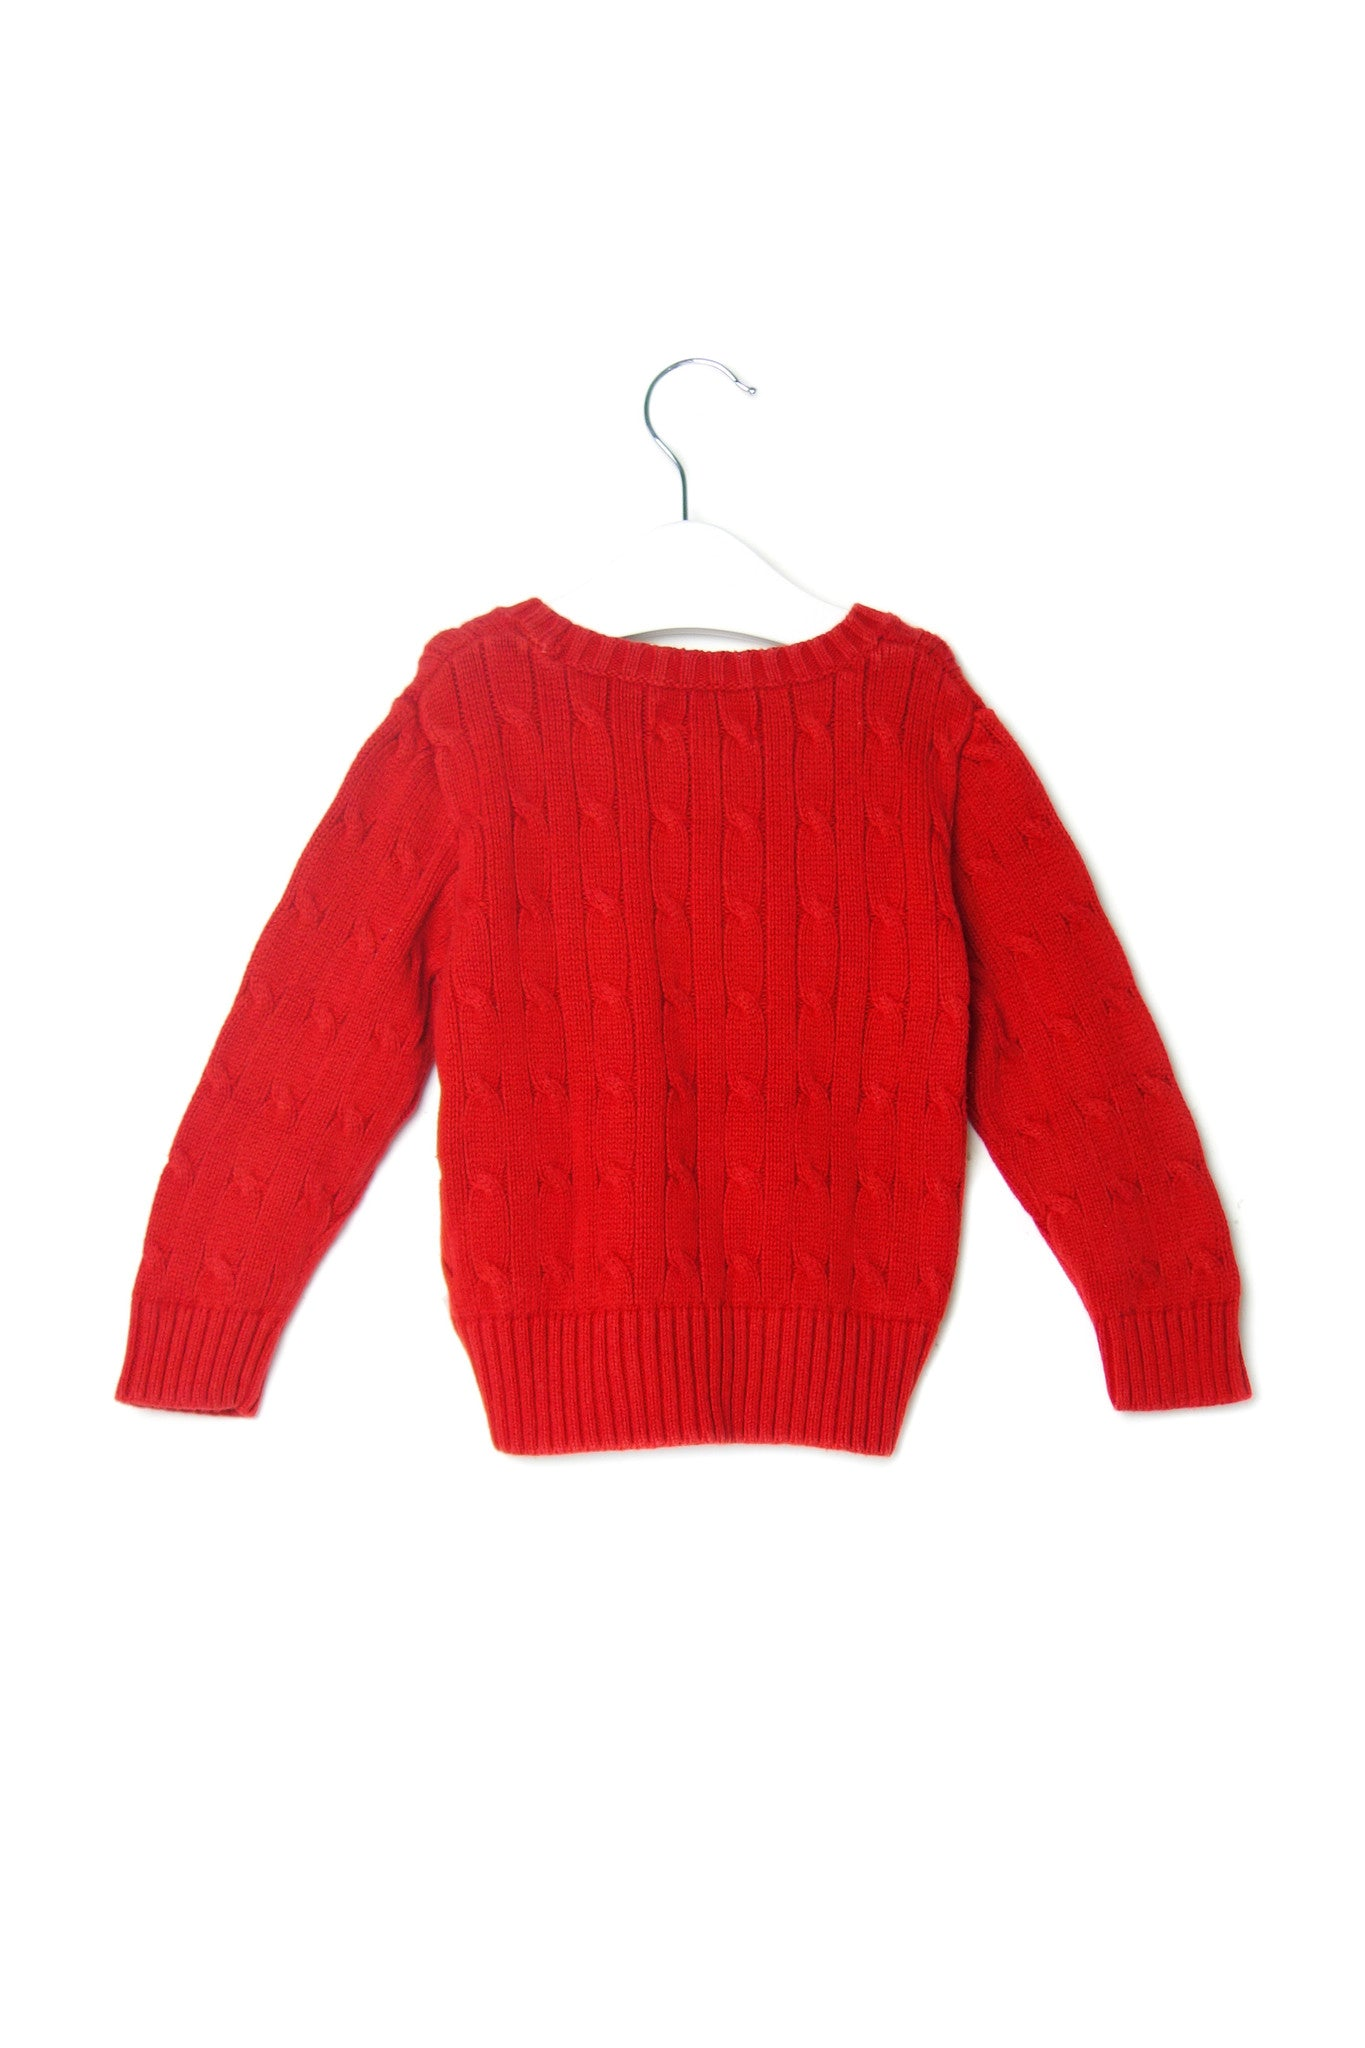 10002005 Polo Ralph Lauren Kids~Sweater 2T at Retykle